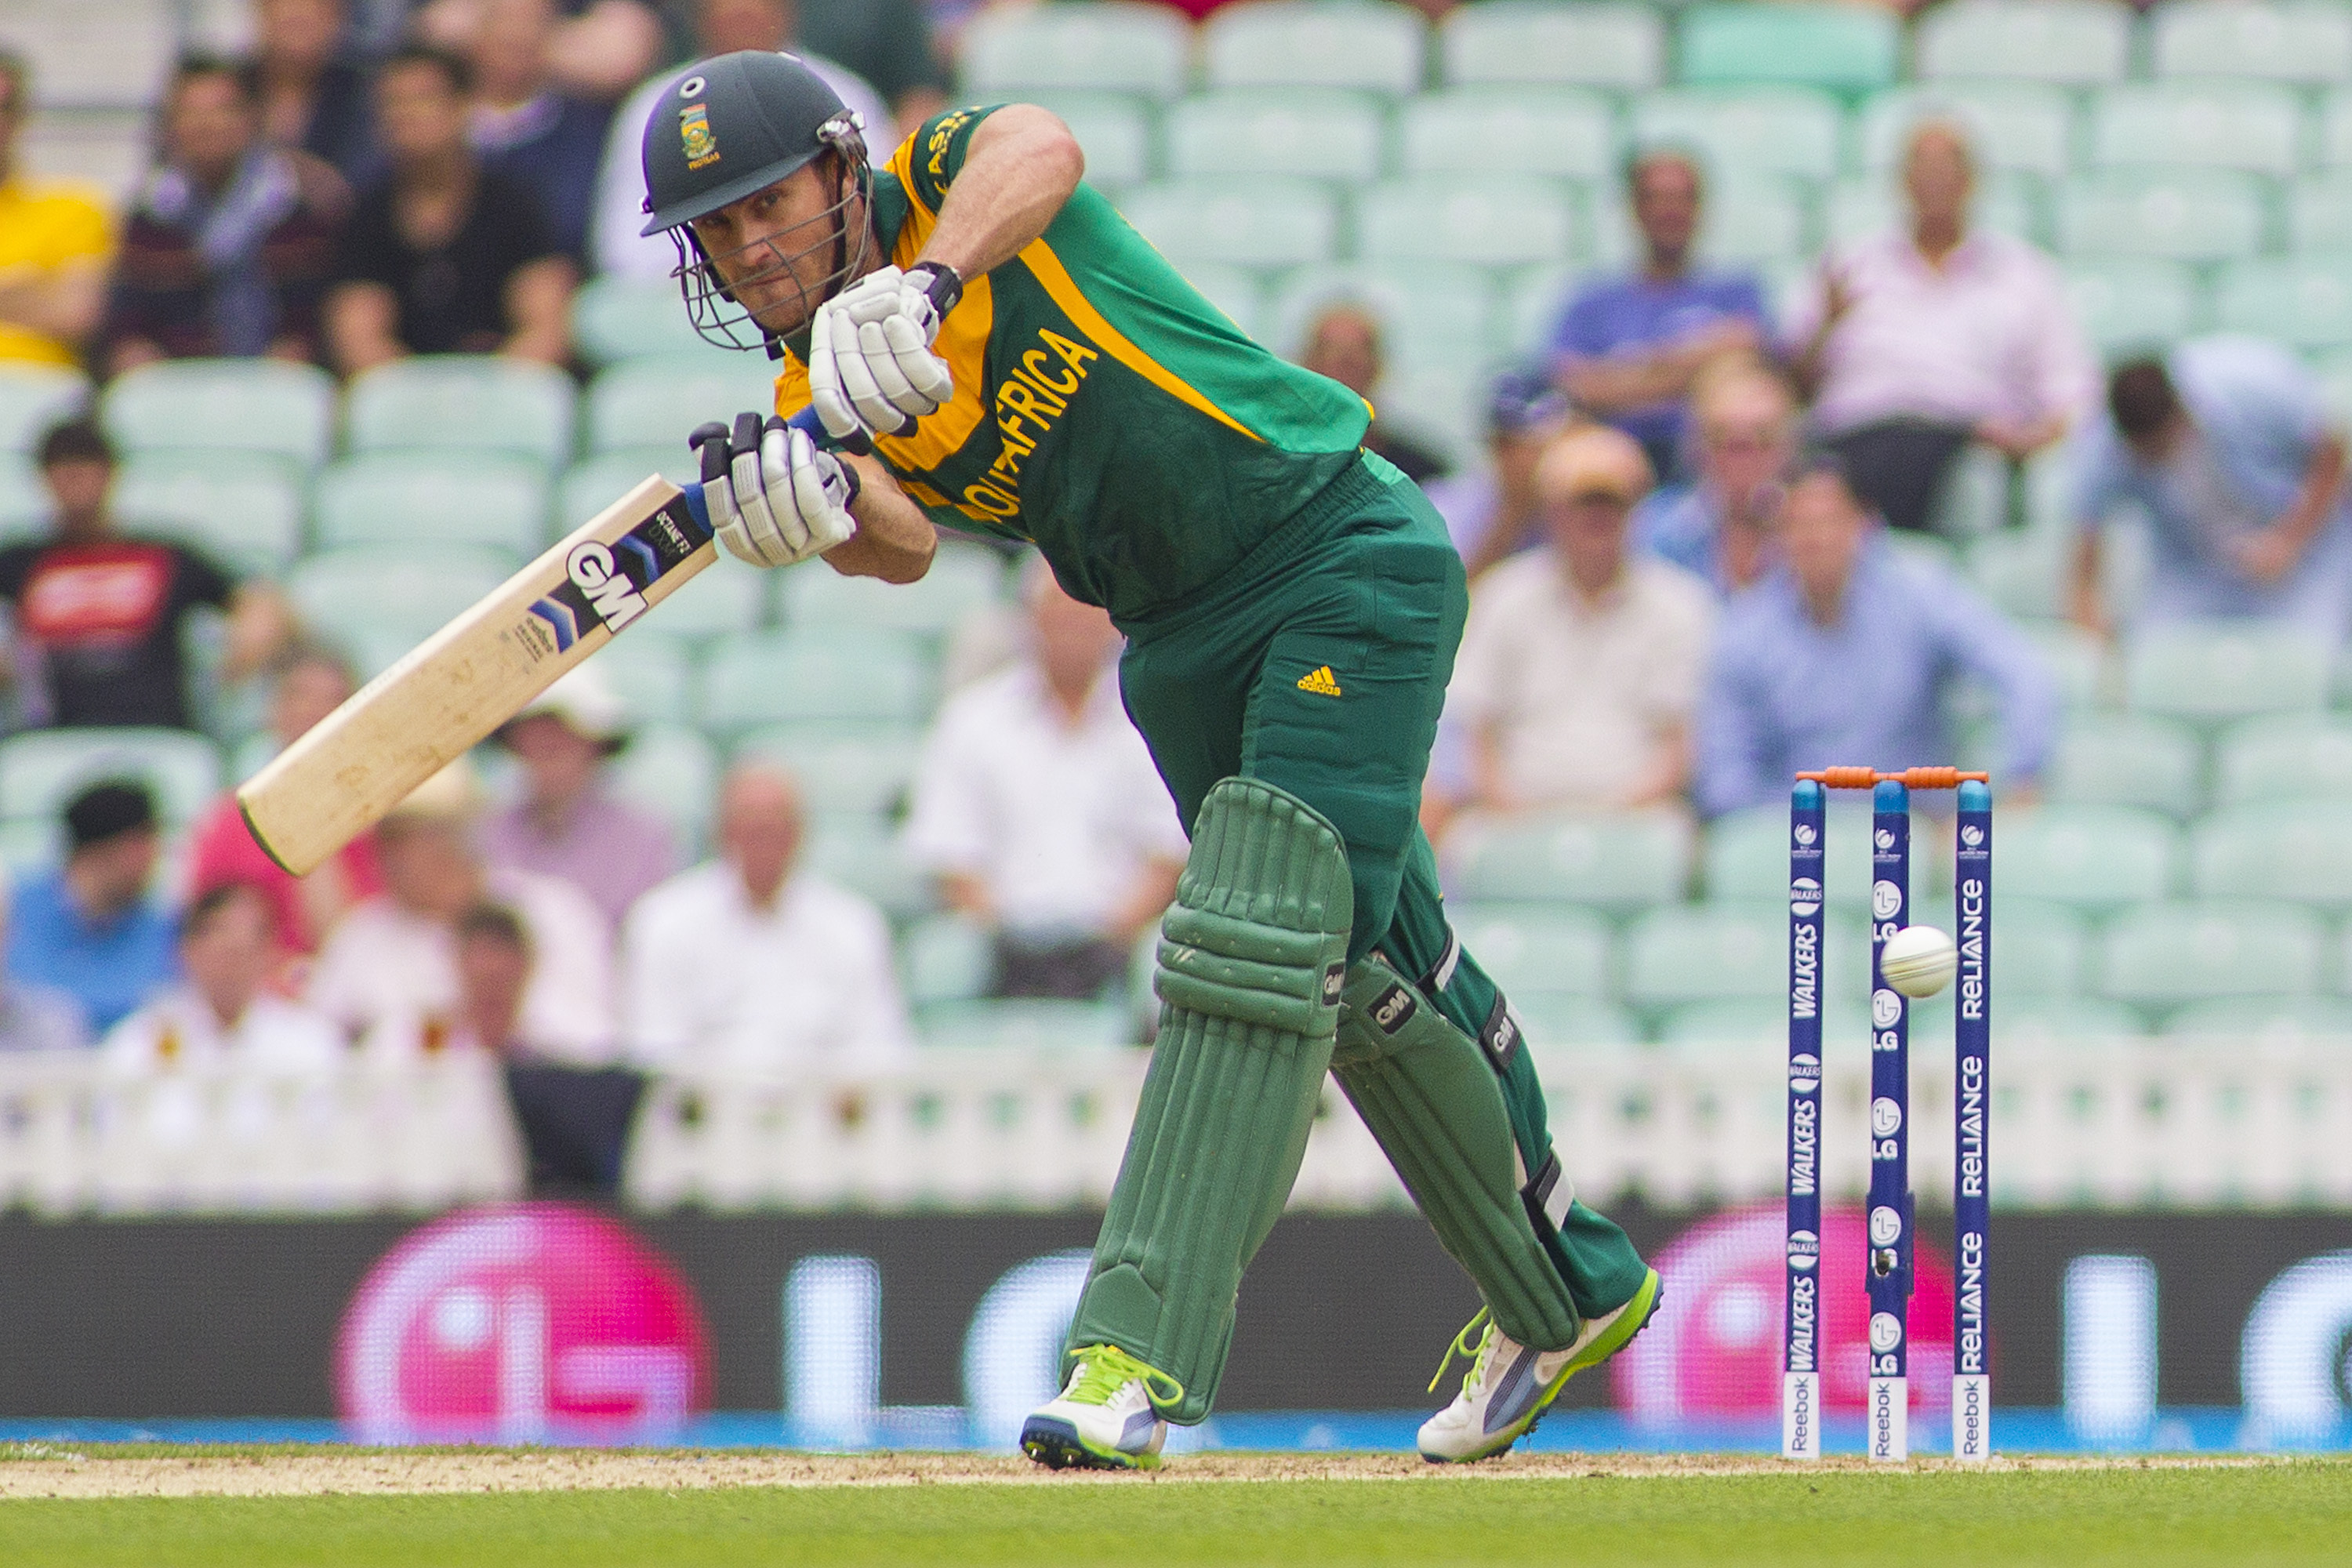 Cape Town Events, Best of the Best promotion, Cape Grace, Cricket SA, T20, South Africa vs England